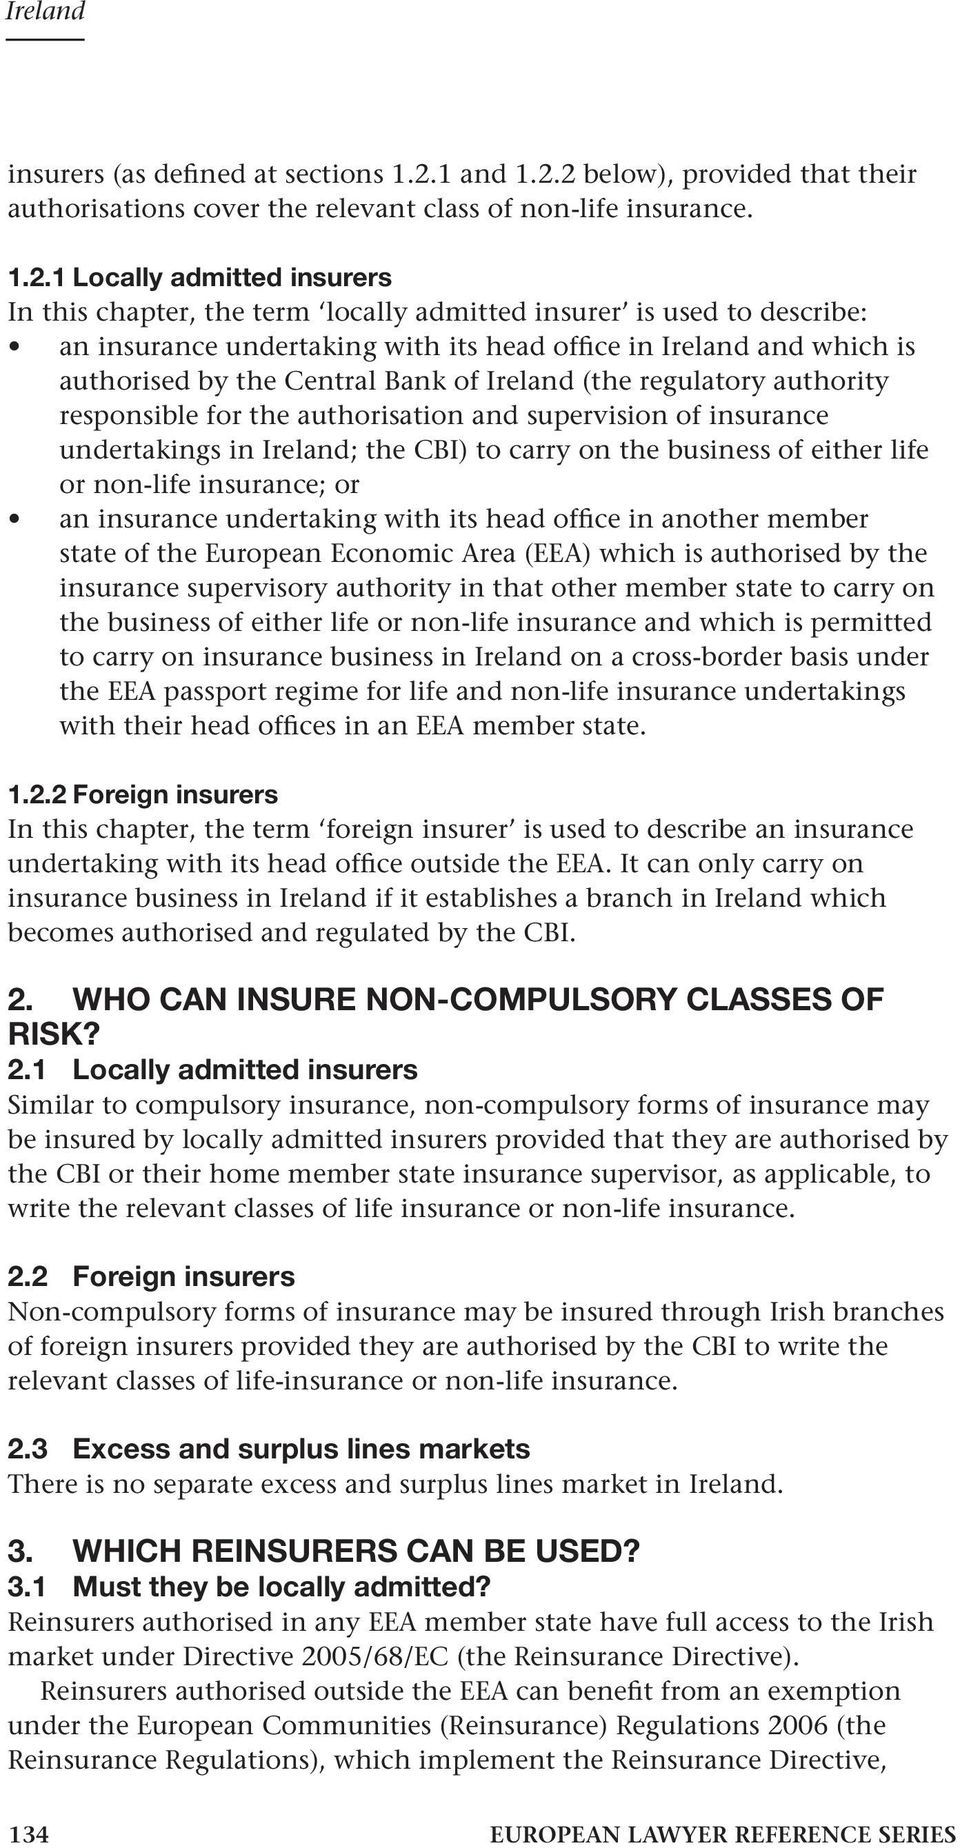 2 below), provided that their authorisations cover the relevant class of non-life insurance. 1.2.1 Locally admitted insurers In this chapter, the term locally admitted insurer is used to describe: an